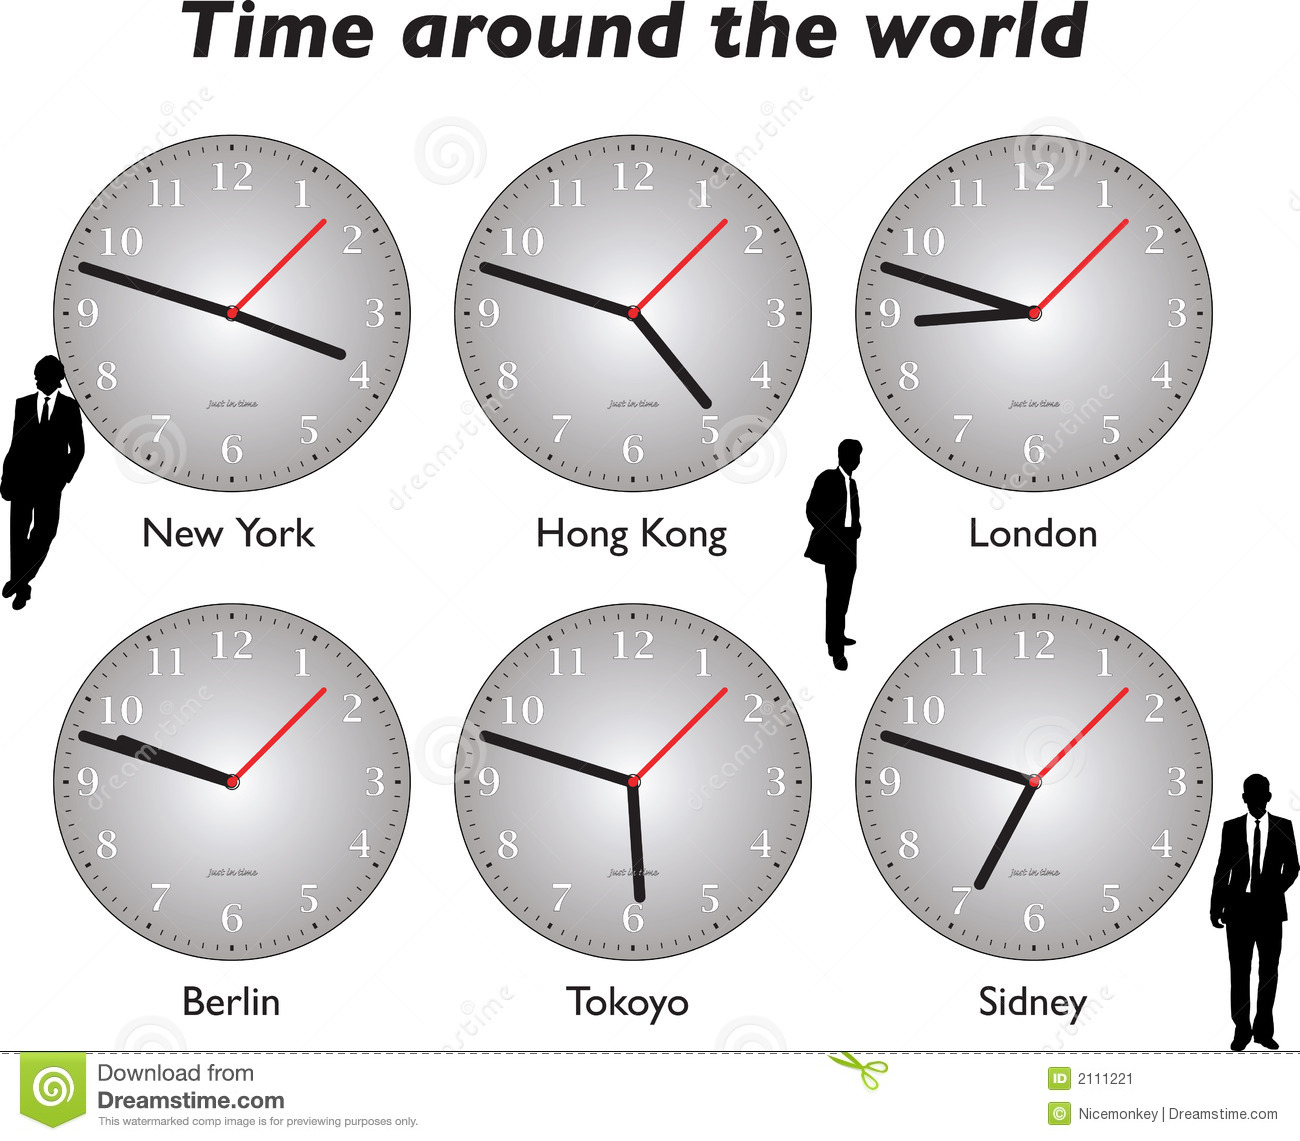 Time Around The World Business Stock Image - Image: 2111221